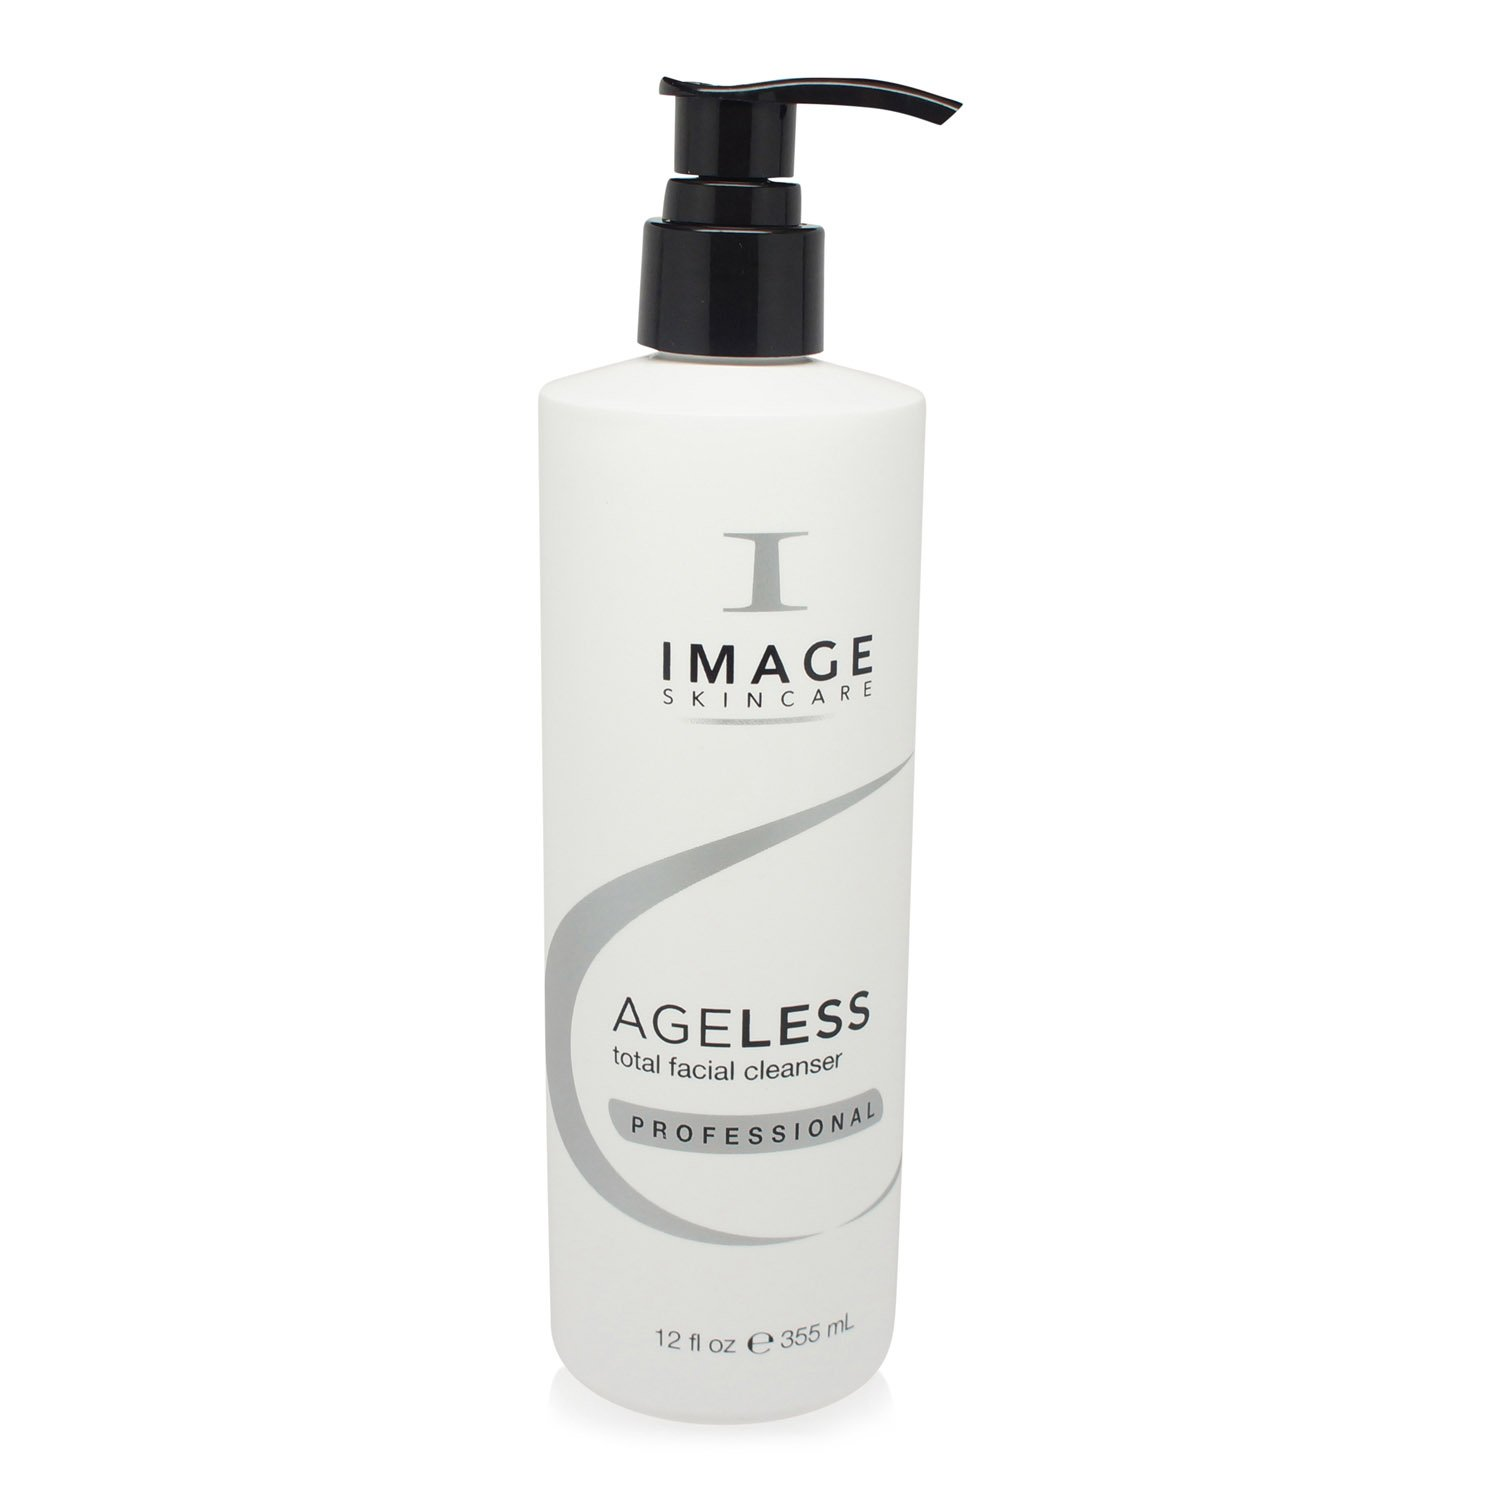 Image Skincare Ageless Total Facial Cleanser, 12 Oz, 0.93 lb